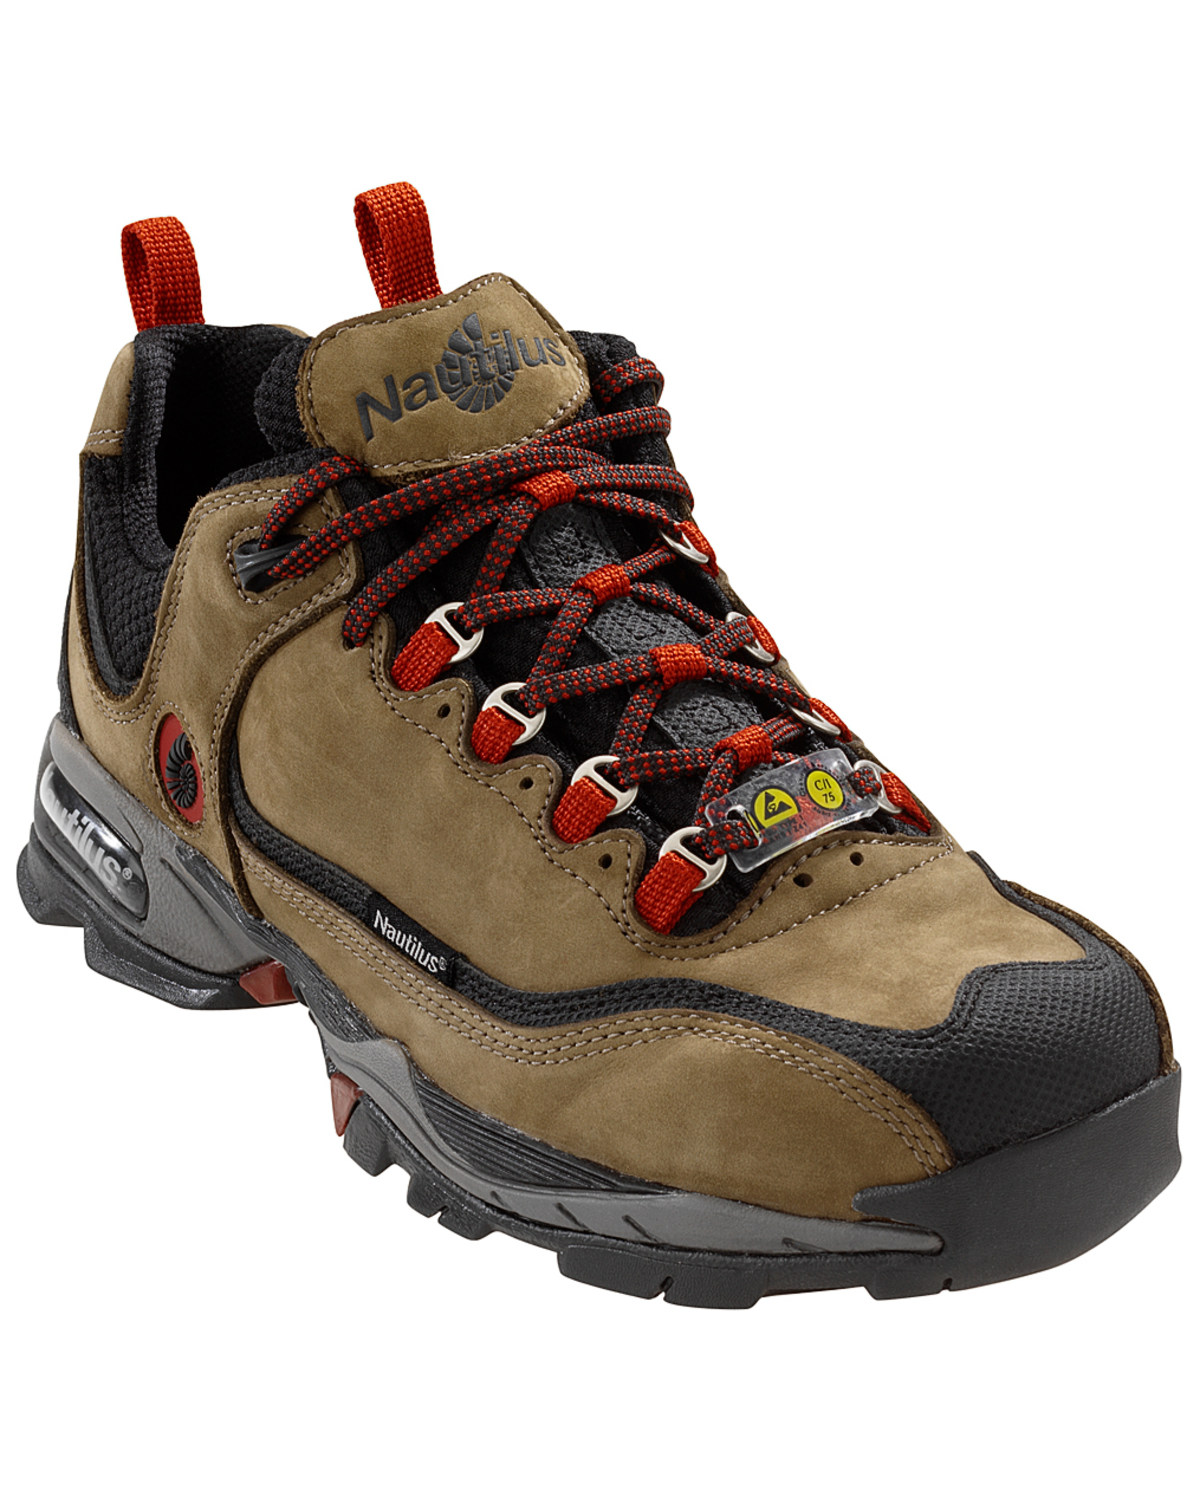 ESD Steel Toe Athletic Shoes | Boot Barn